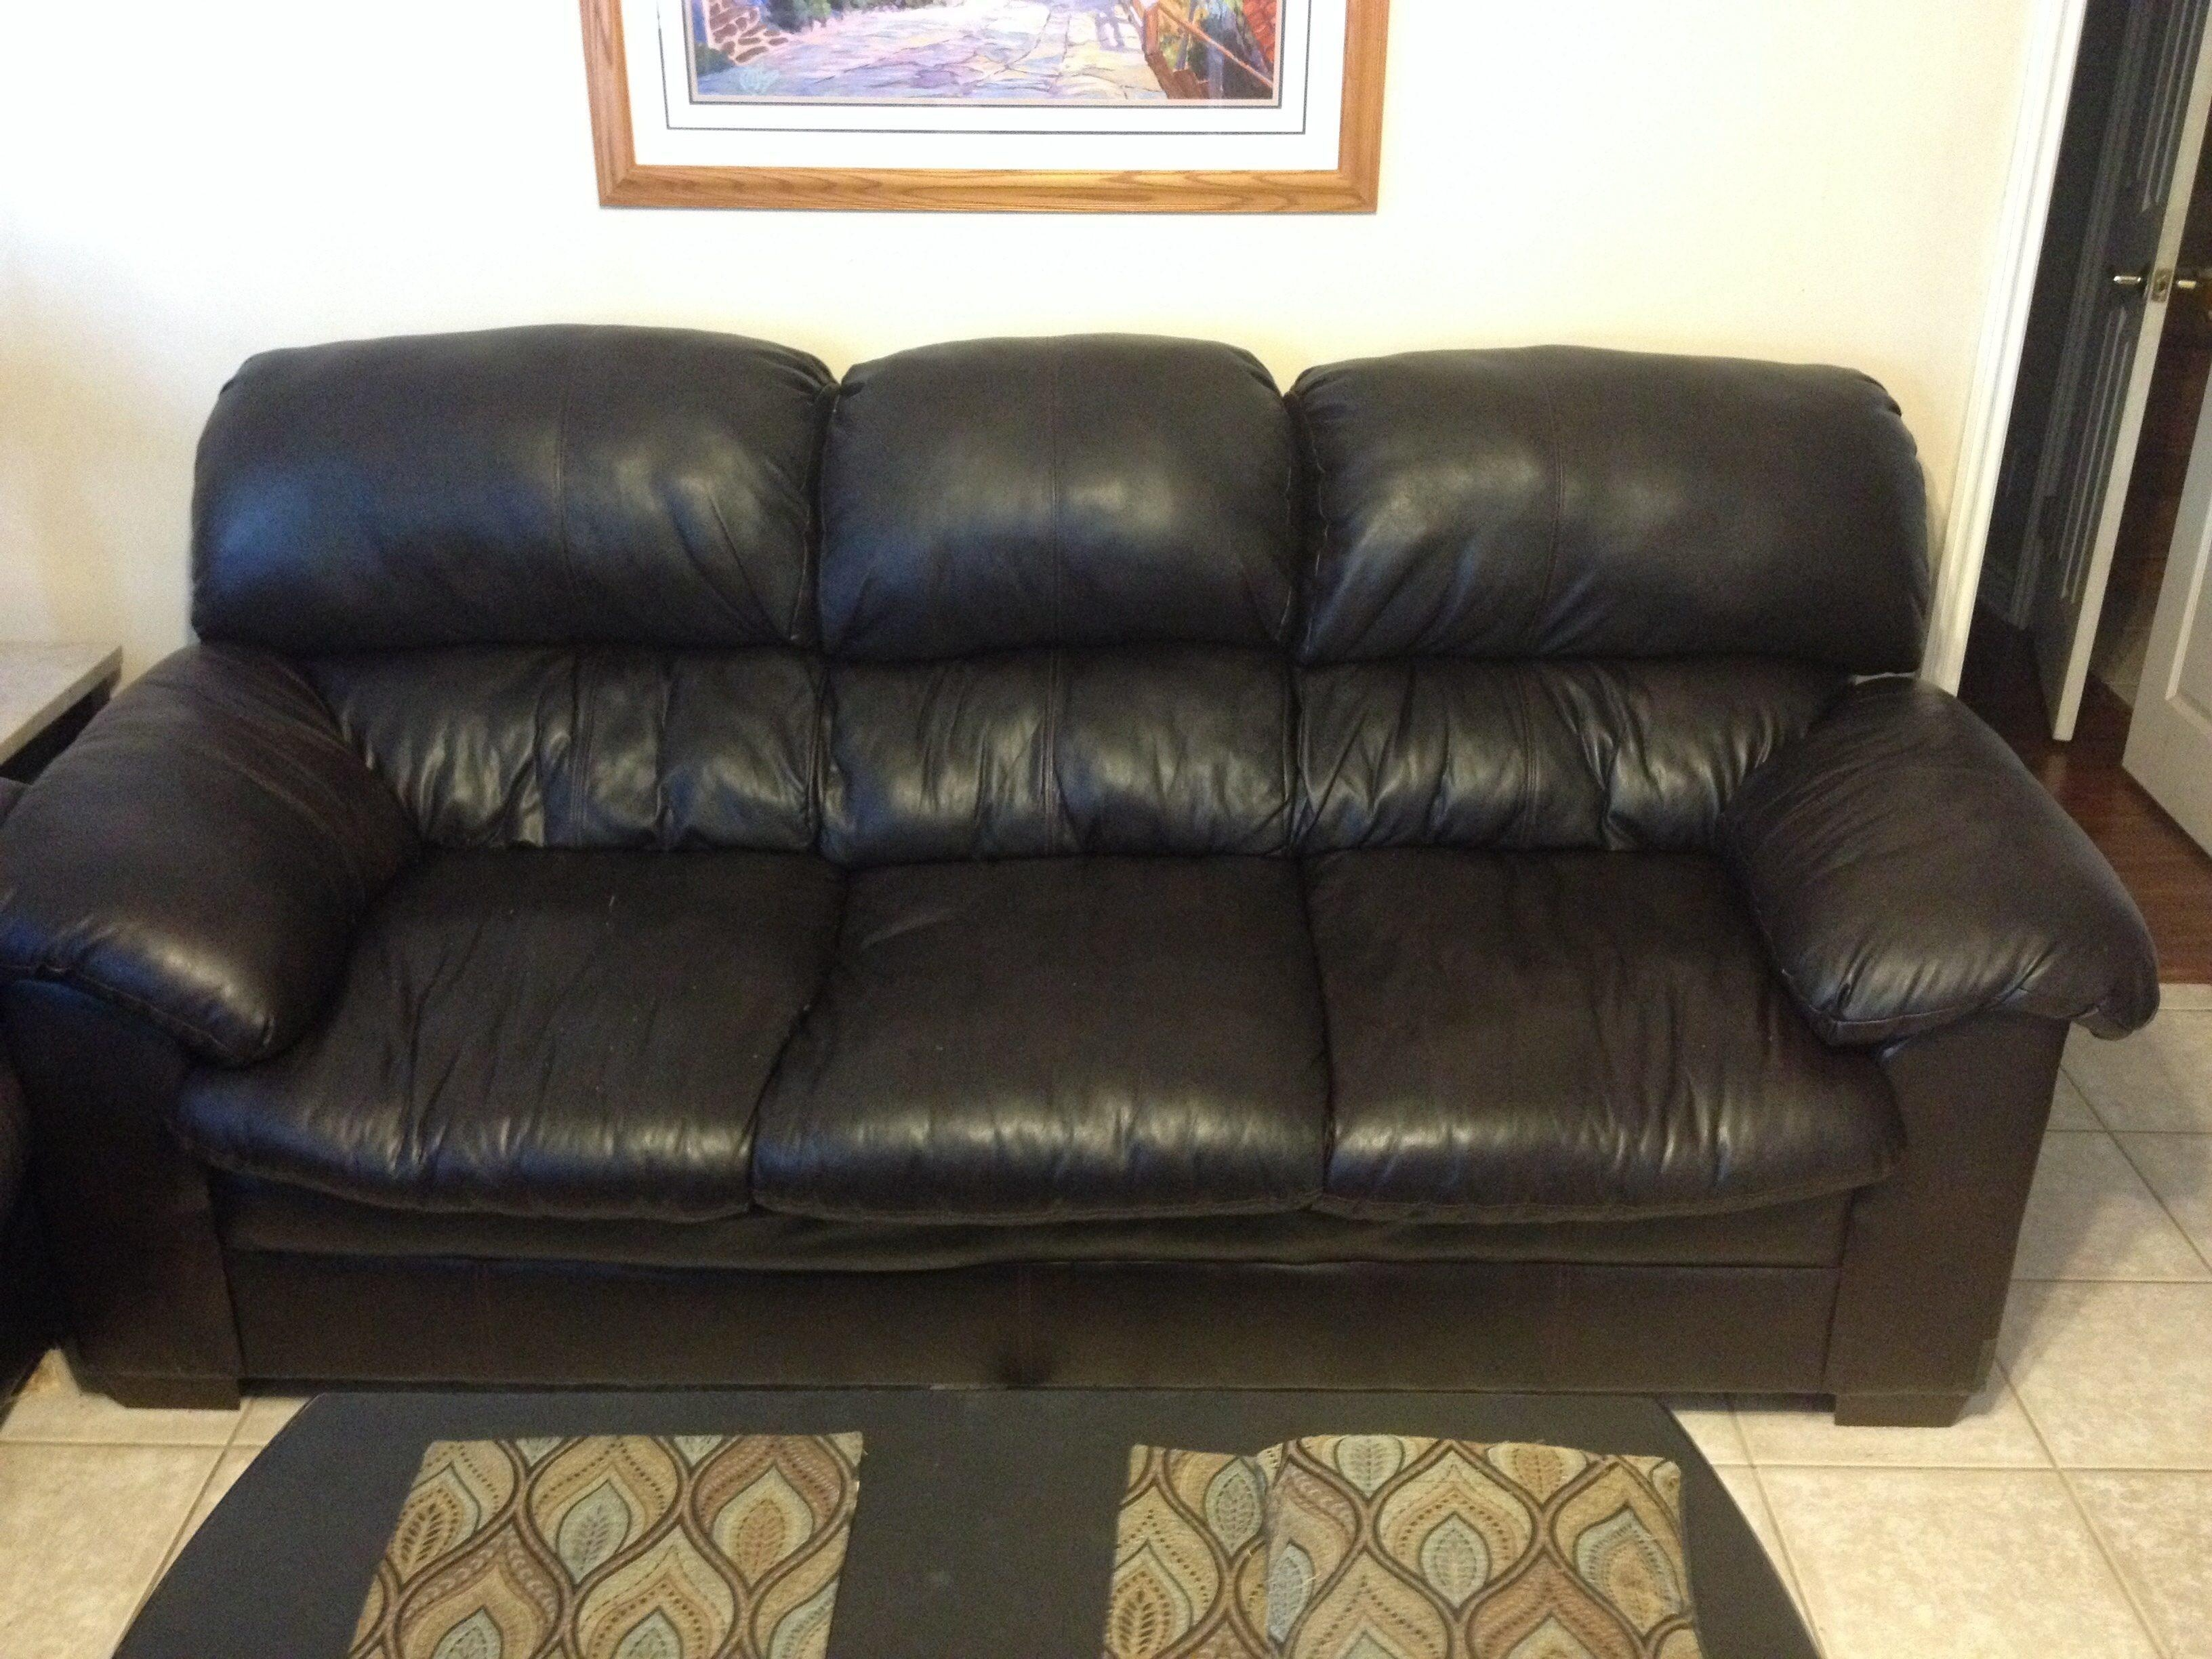 Top 205 Reviews And Complaints About Big Lots | Page 3 With Regard To Big Lots Sofas (Image 20 of 20)